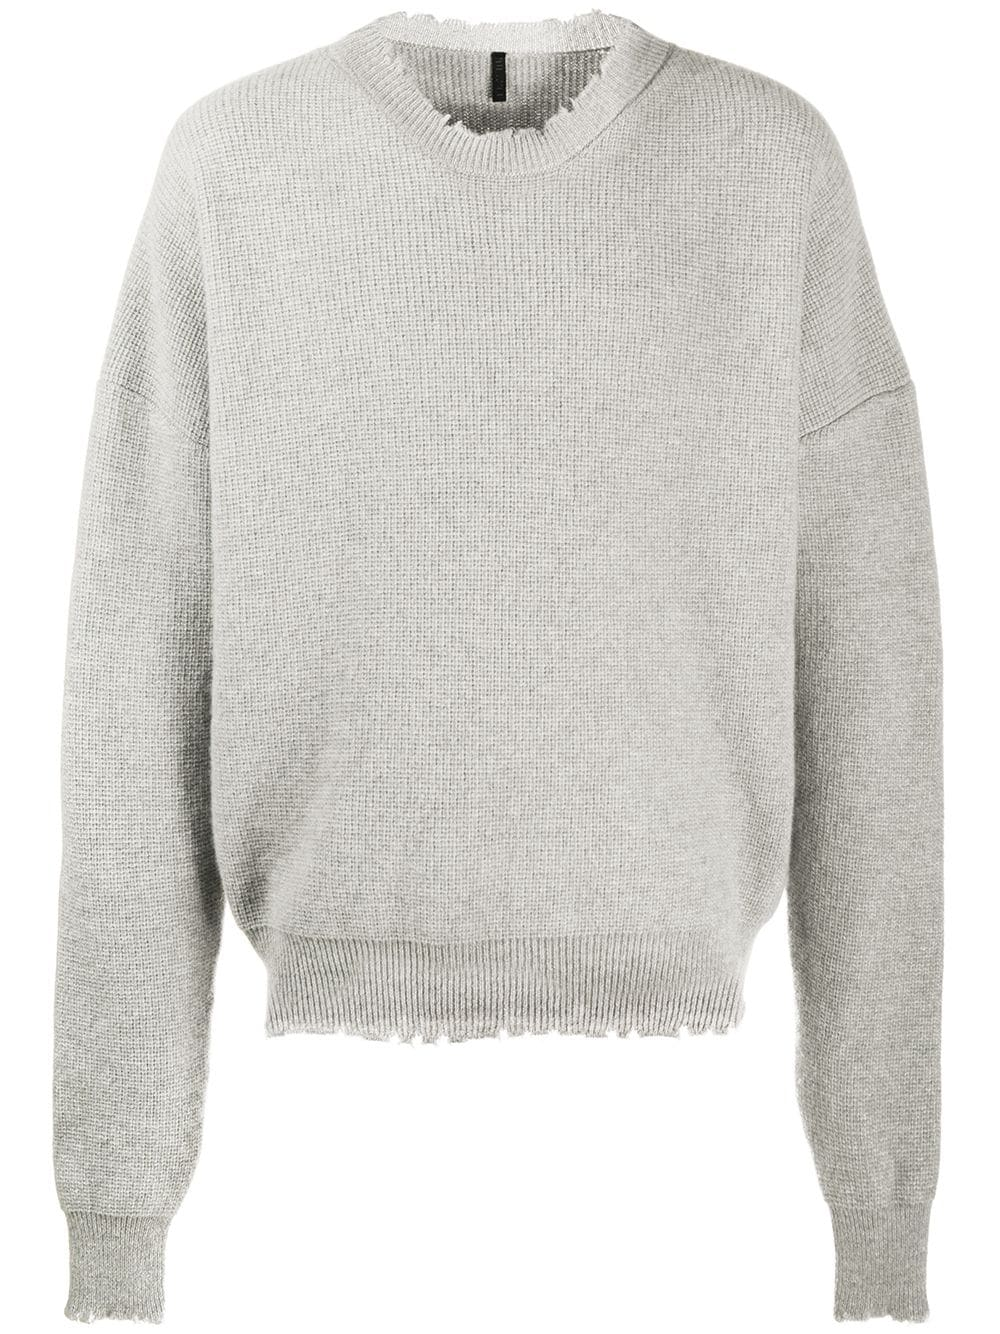 UNRAVEL PROJECT distressed-edge ribbed jumper - Grey von UNRAVEL PROJECT